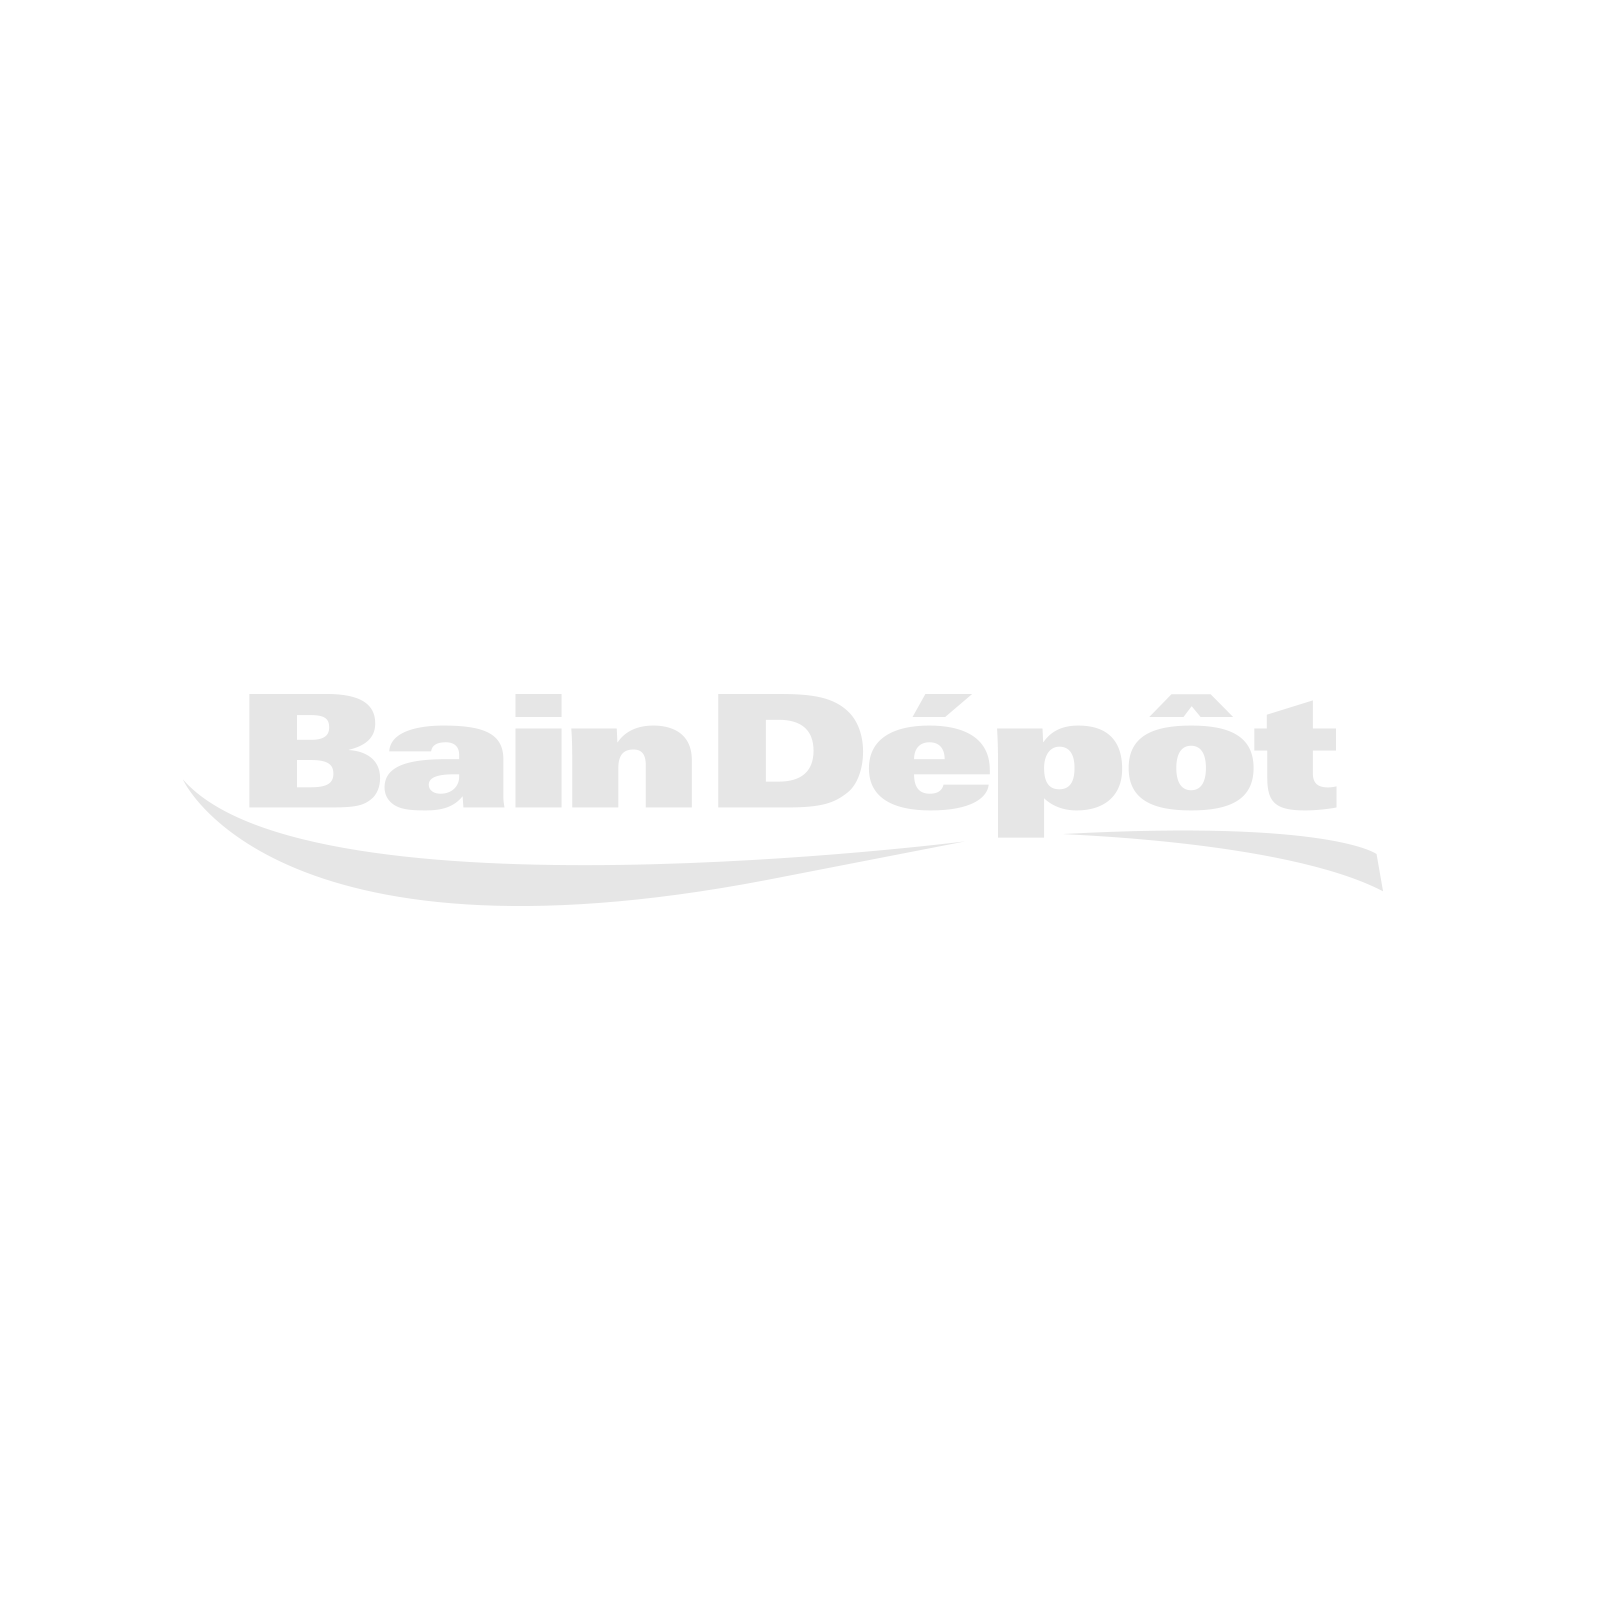 Brushed nickel and classic shower faucet with 5-jet hand shower